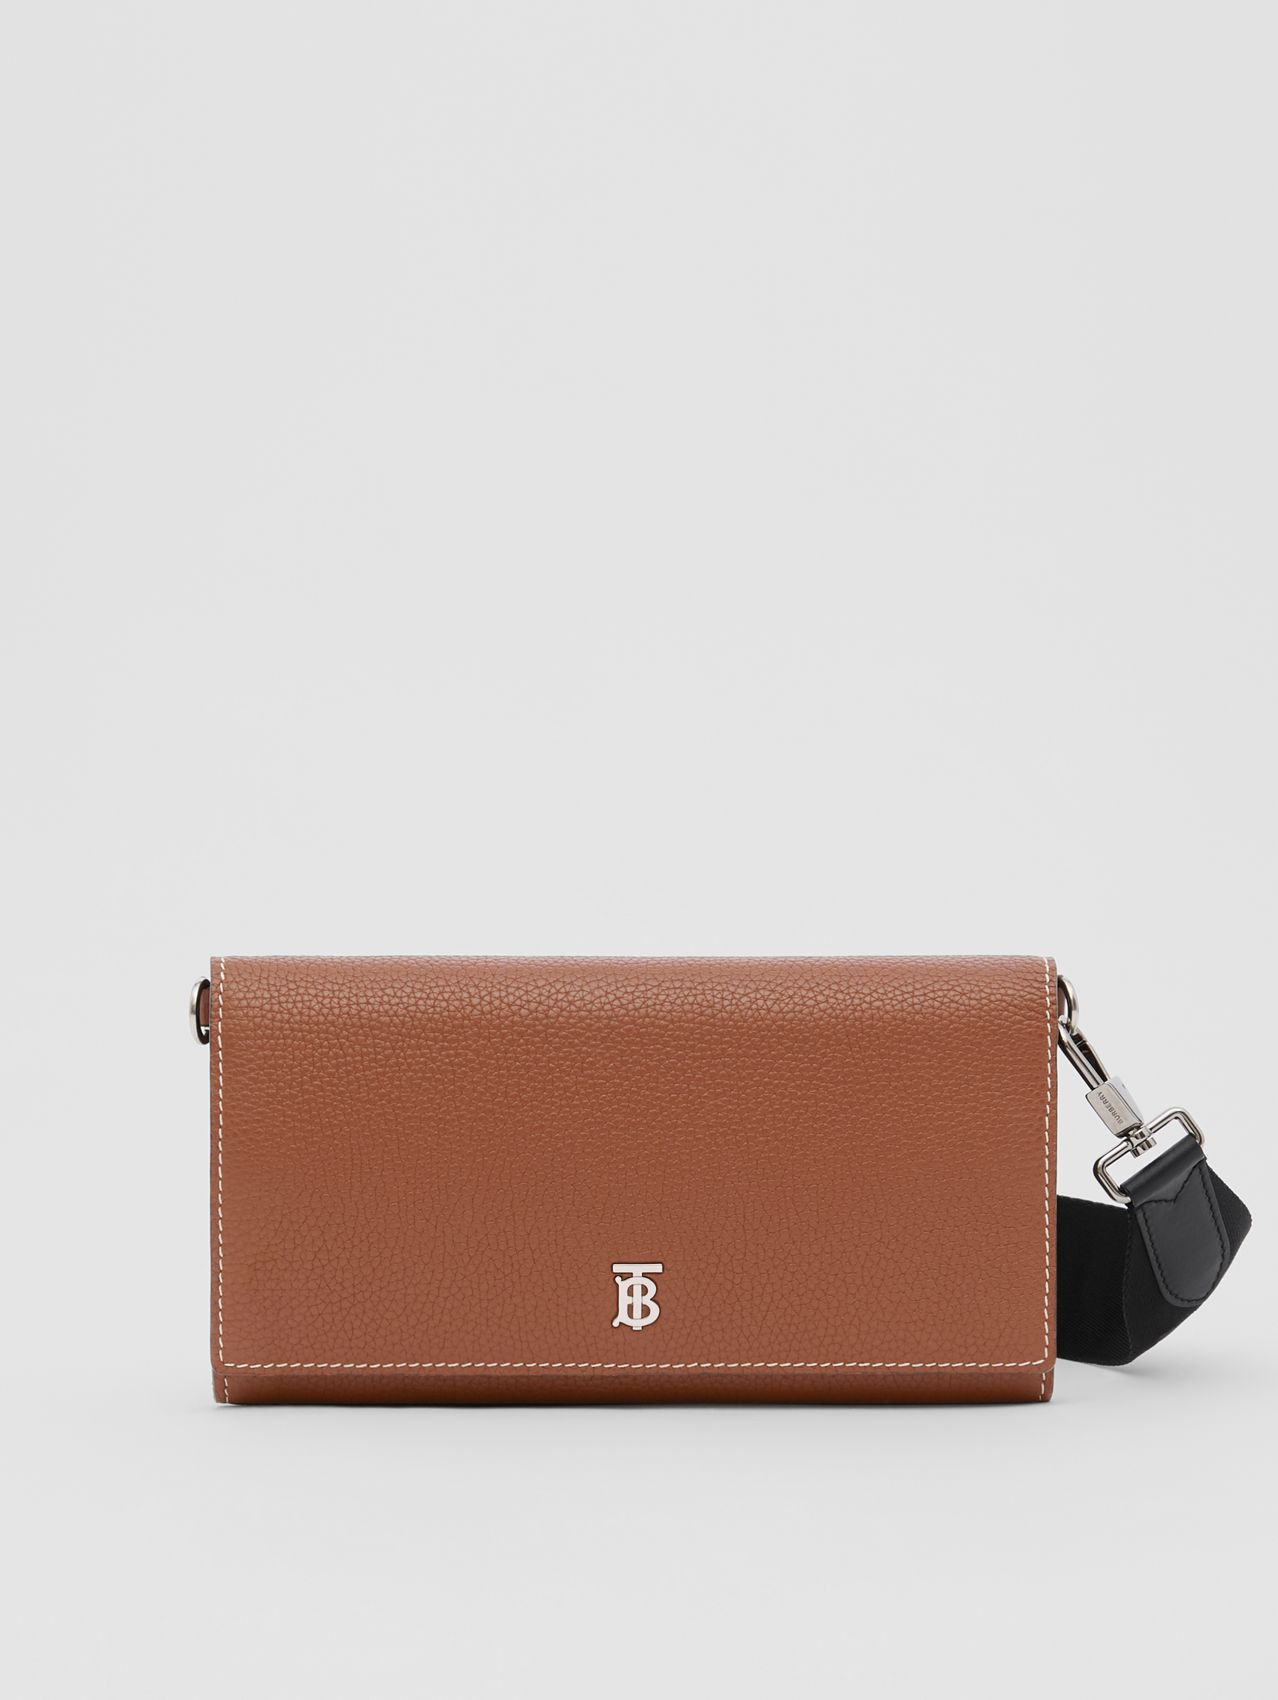 Grainy Leather Wallet with Detachable Strap in Tan